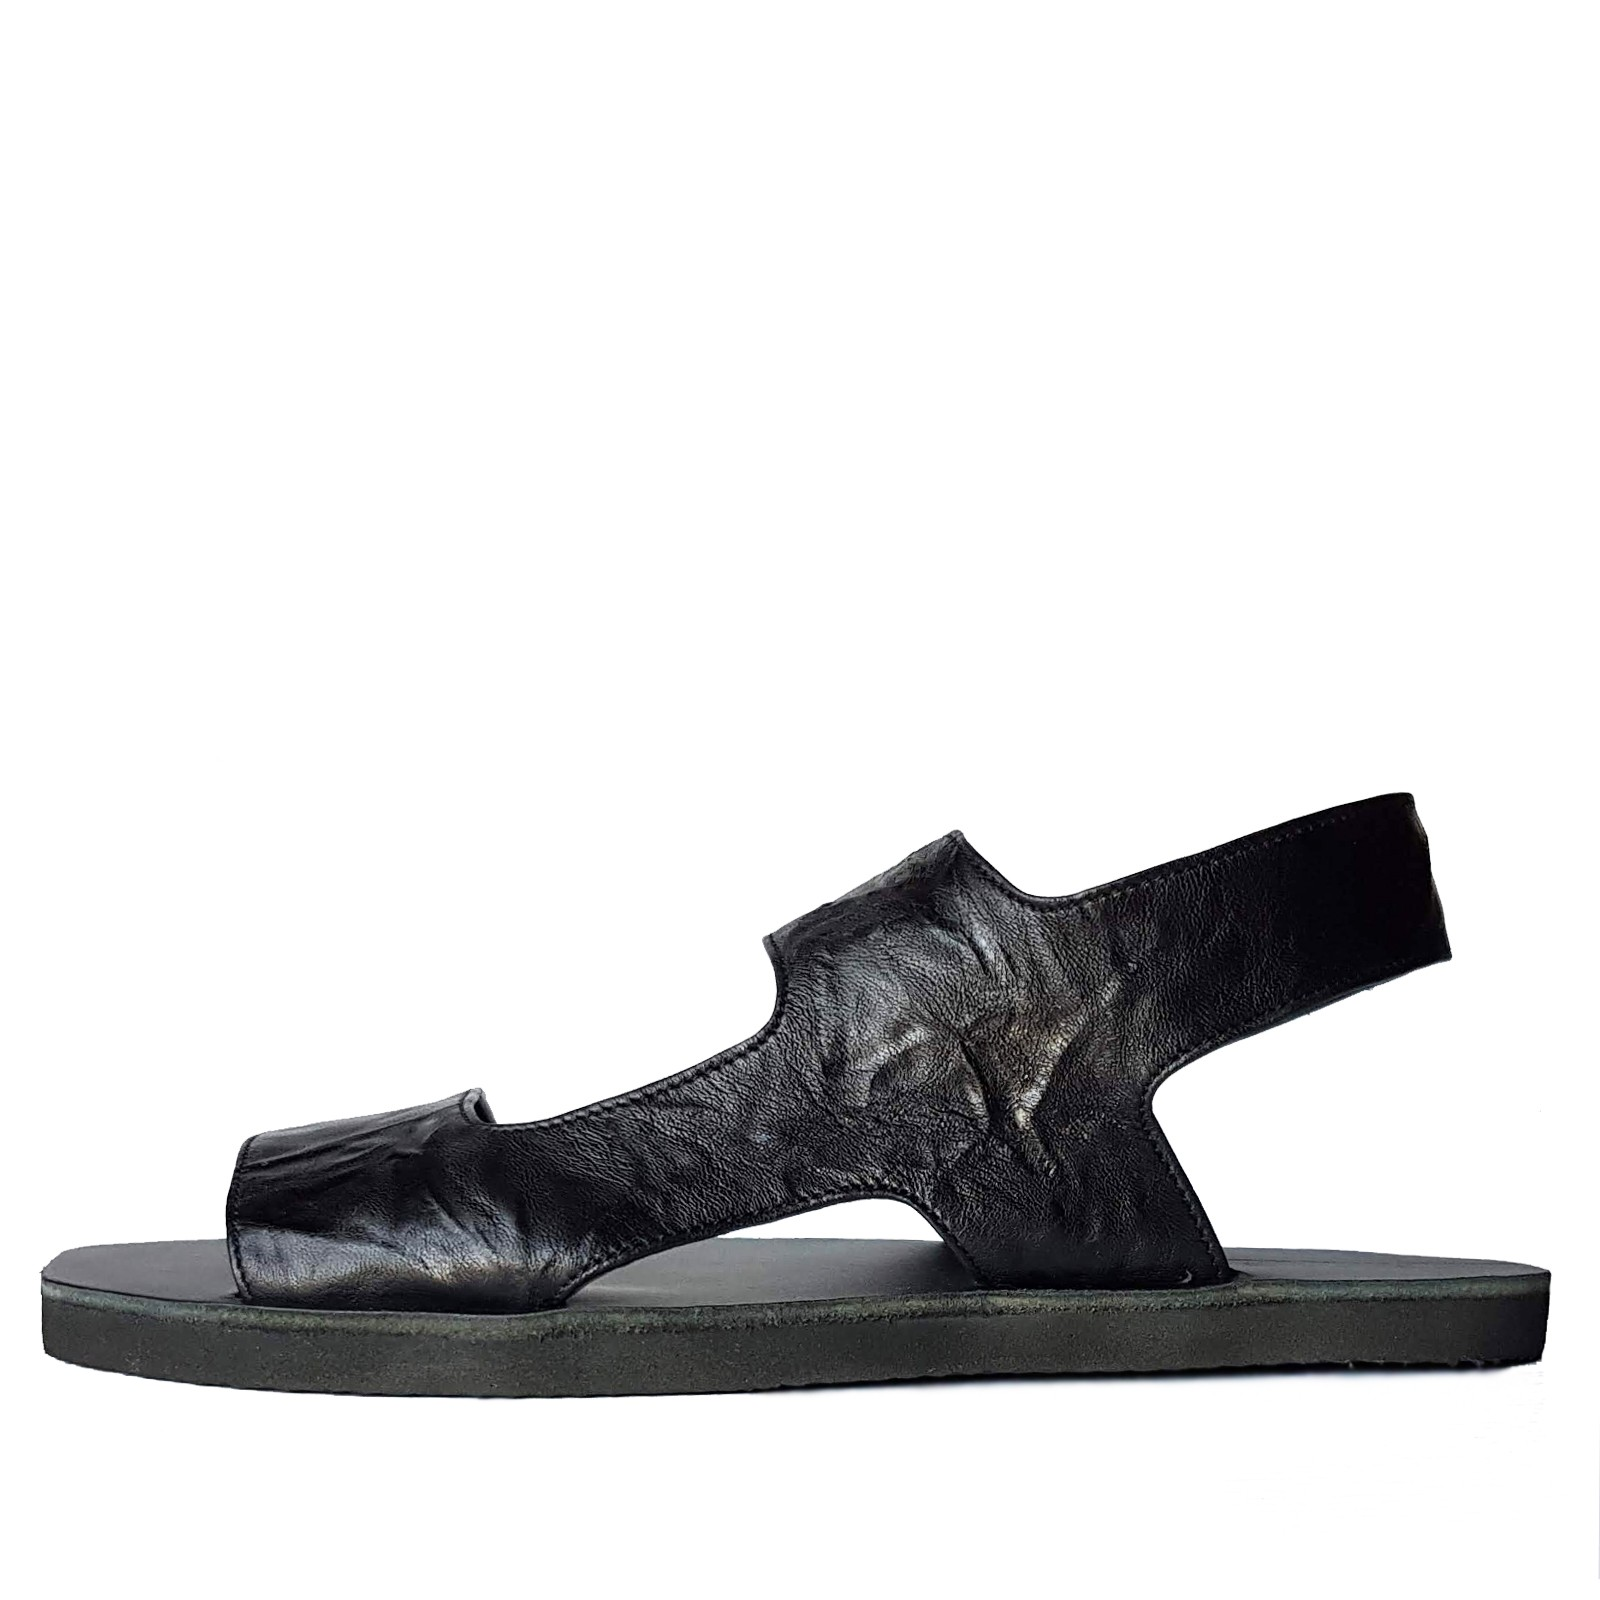 Men's genuine leather sandals